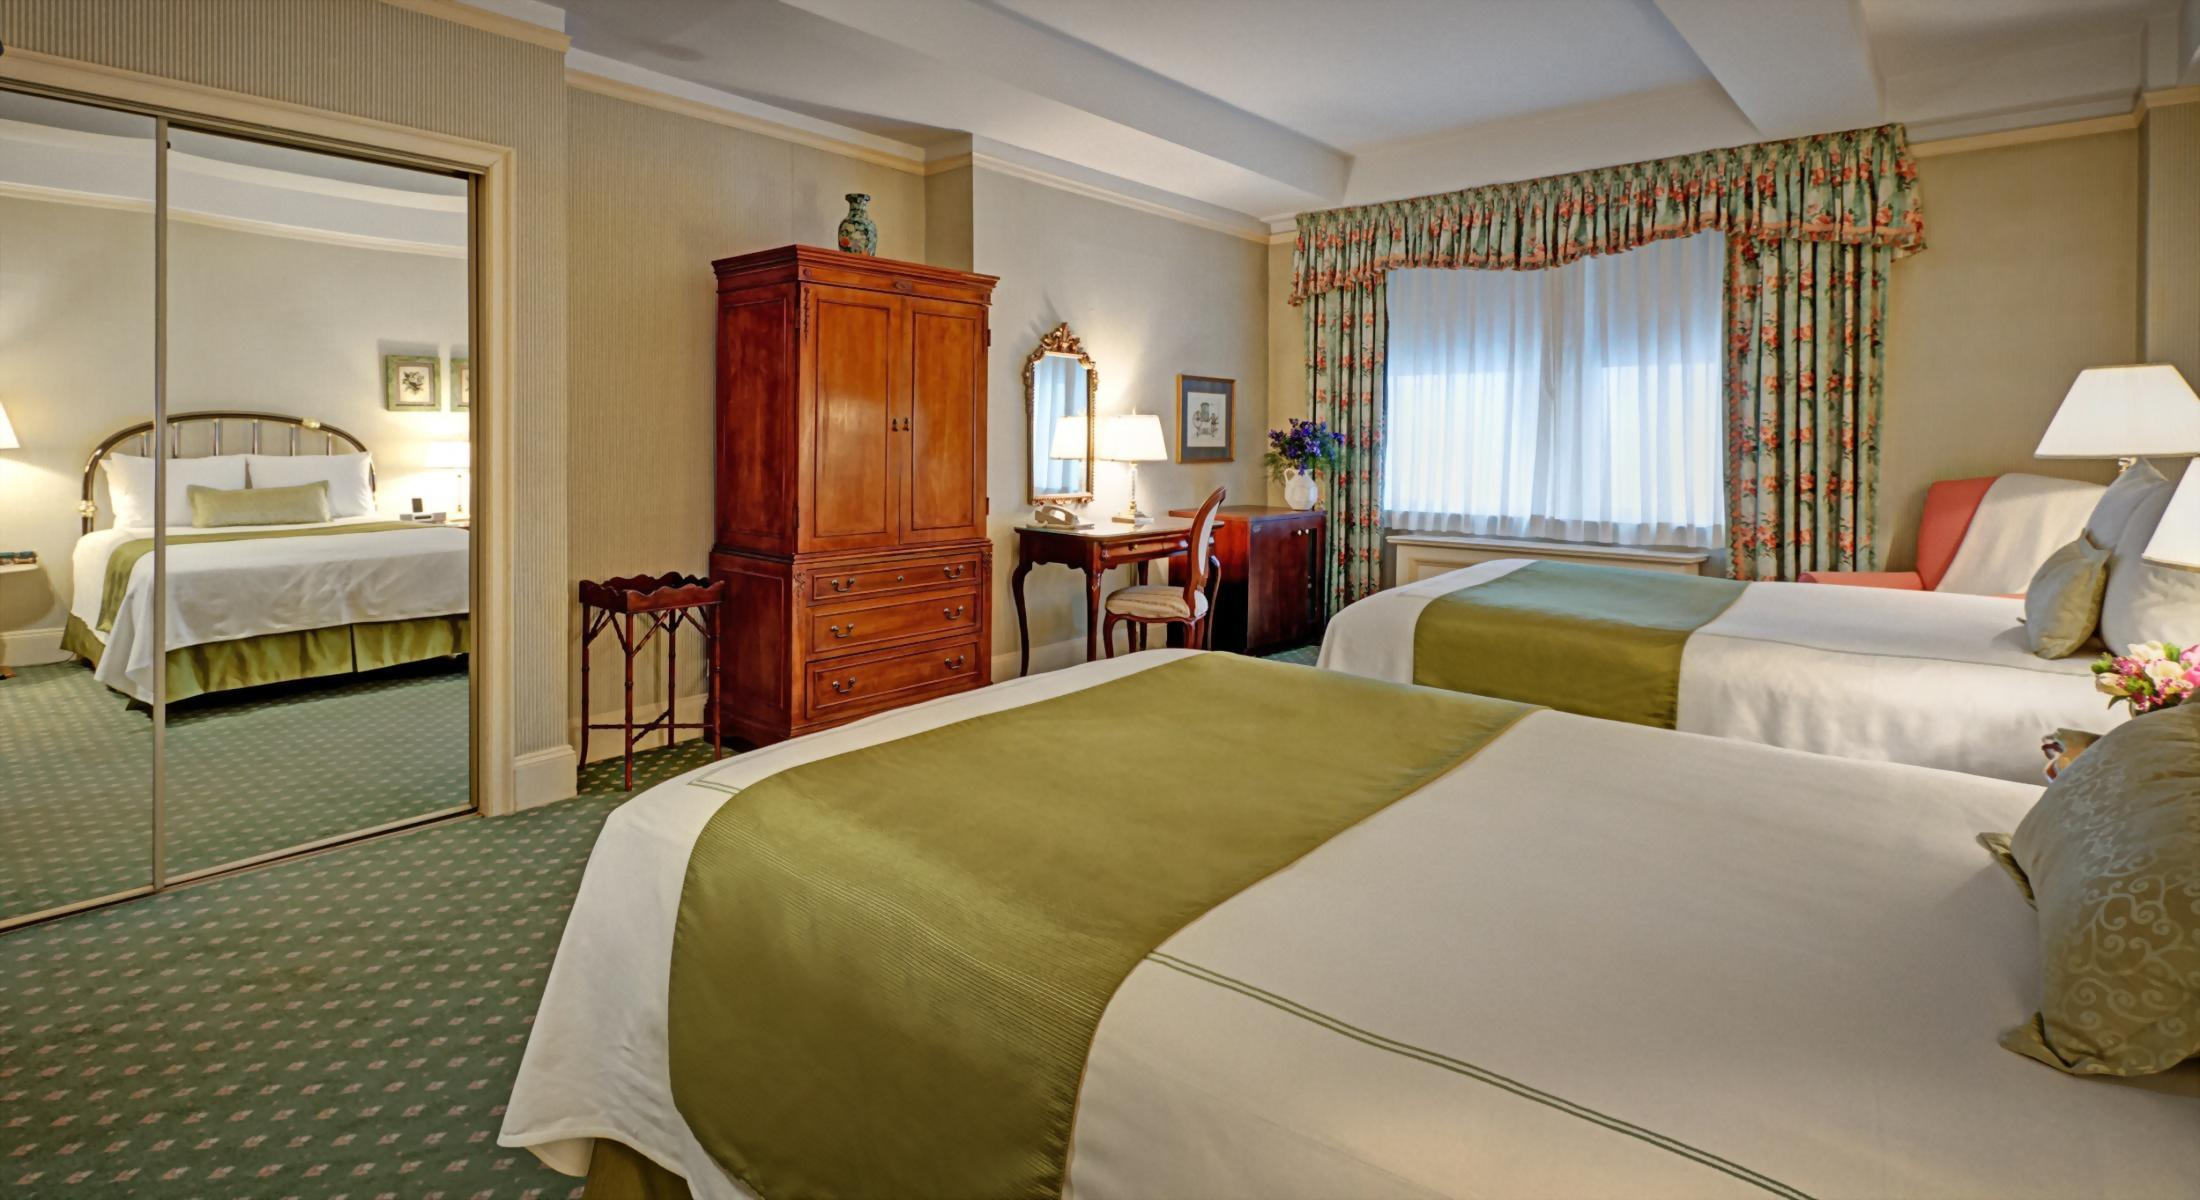 Deluxe Double Room with 2 Double Size beds at the Hotel Elysee.  Approximately 300 square feet.  Perfect for 2 adults or 1 adult and 1 child.